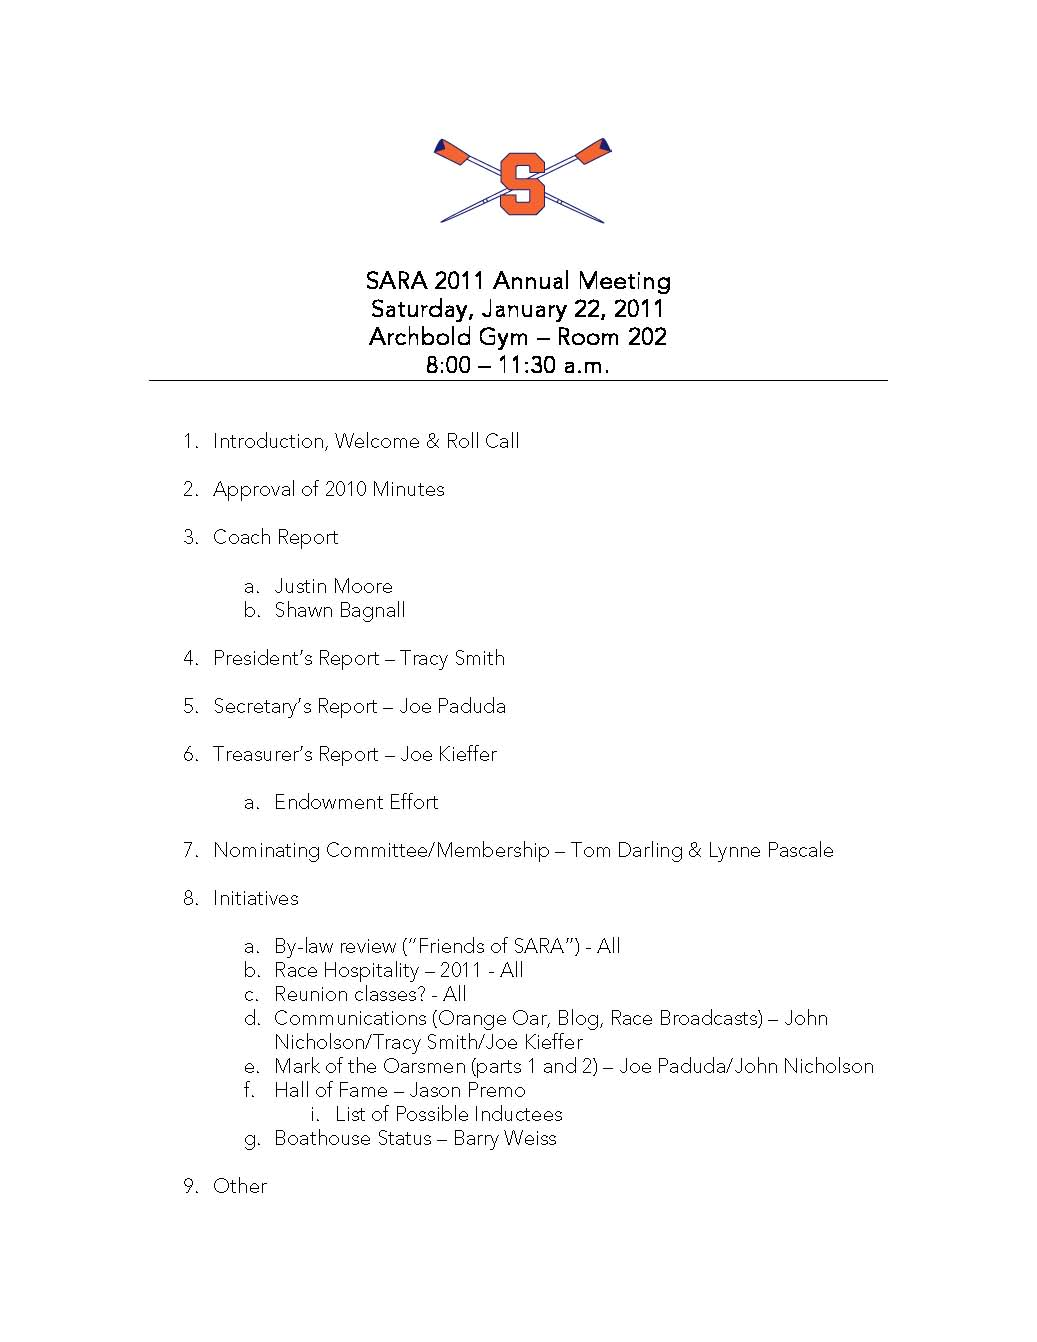 download agenda for organizational meeting book oramasel1975のブログ